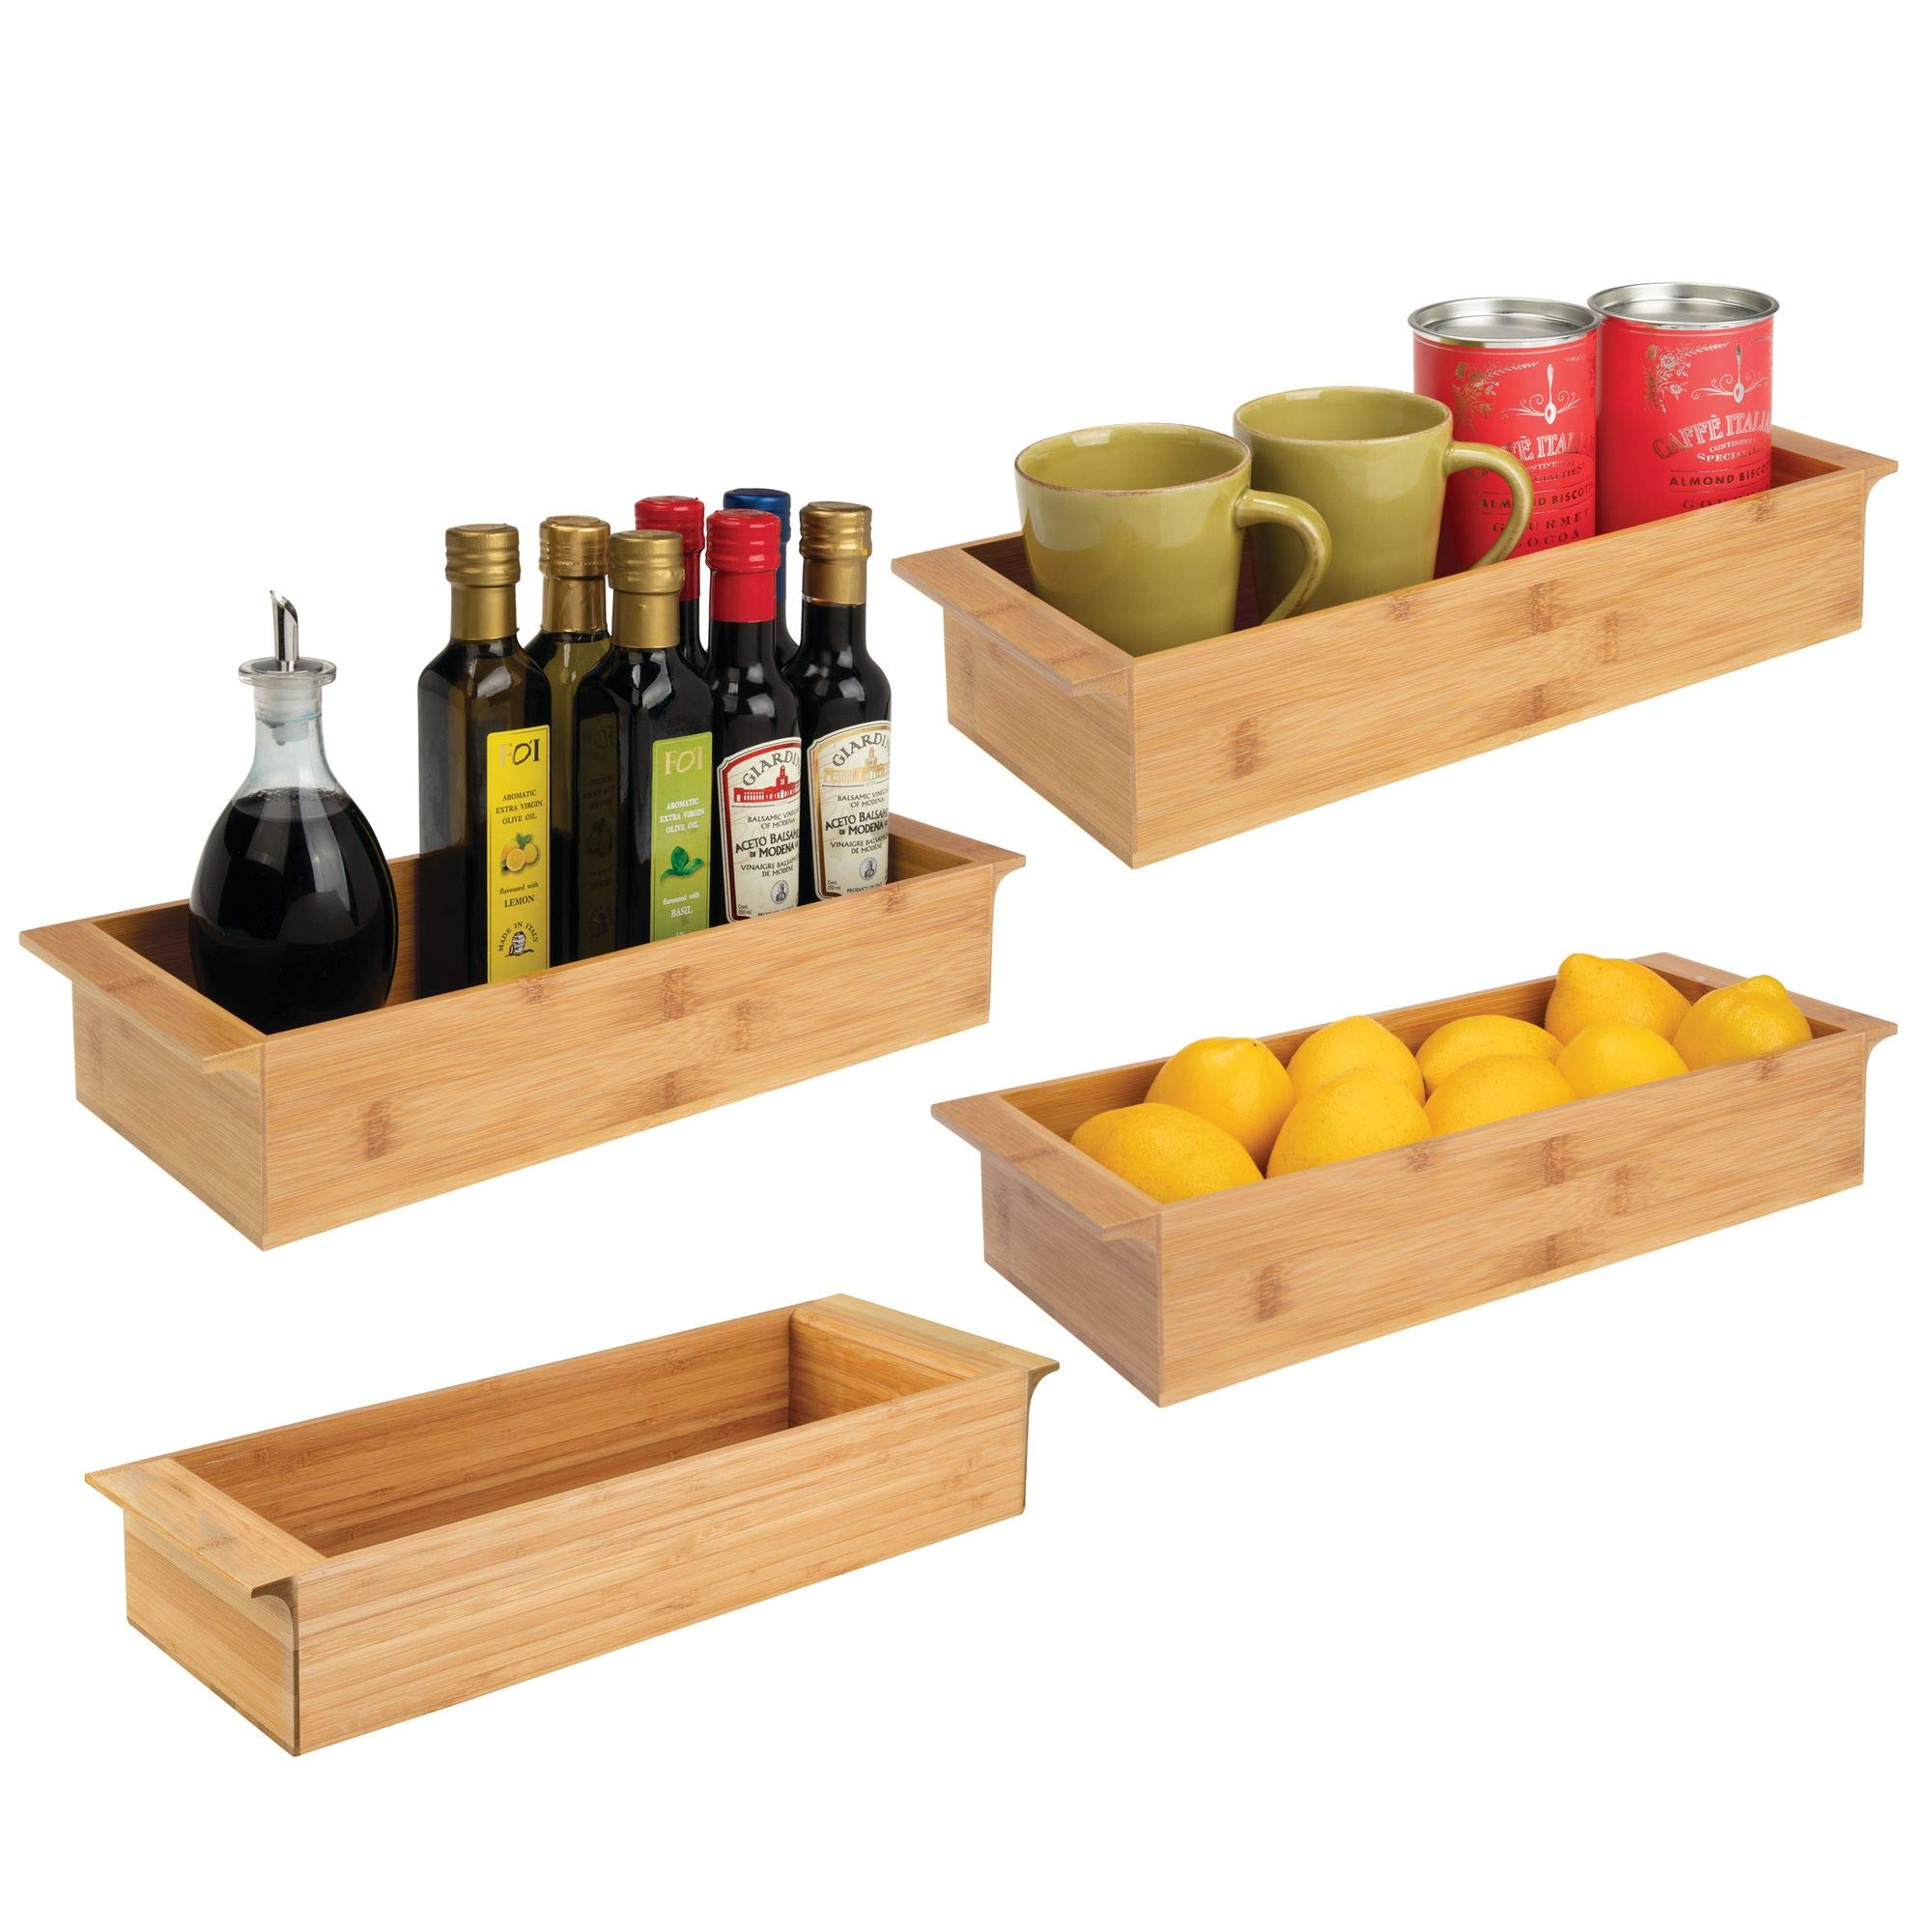 mDesign Bamboo Wood Storage Organizer Tray Bin with Handles, Eco-Friendly, Multipurpose; Use in Kitchen Drawers, Countertops, Shelves or Pantry - Pack of 4-16'' x 6'' x 3'', Stackable, Natural Finish